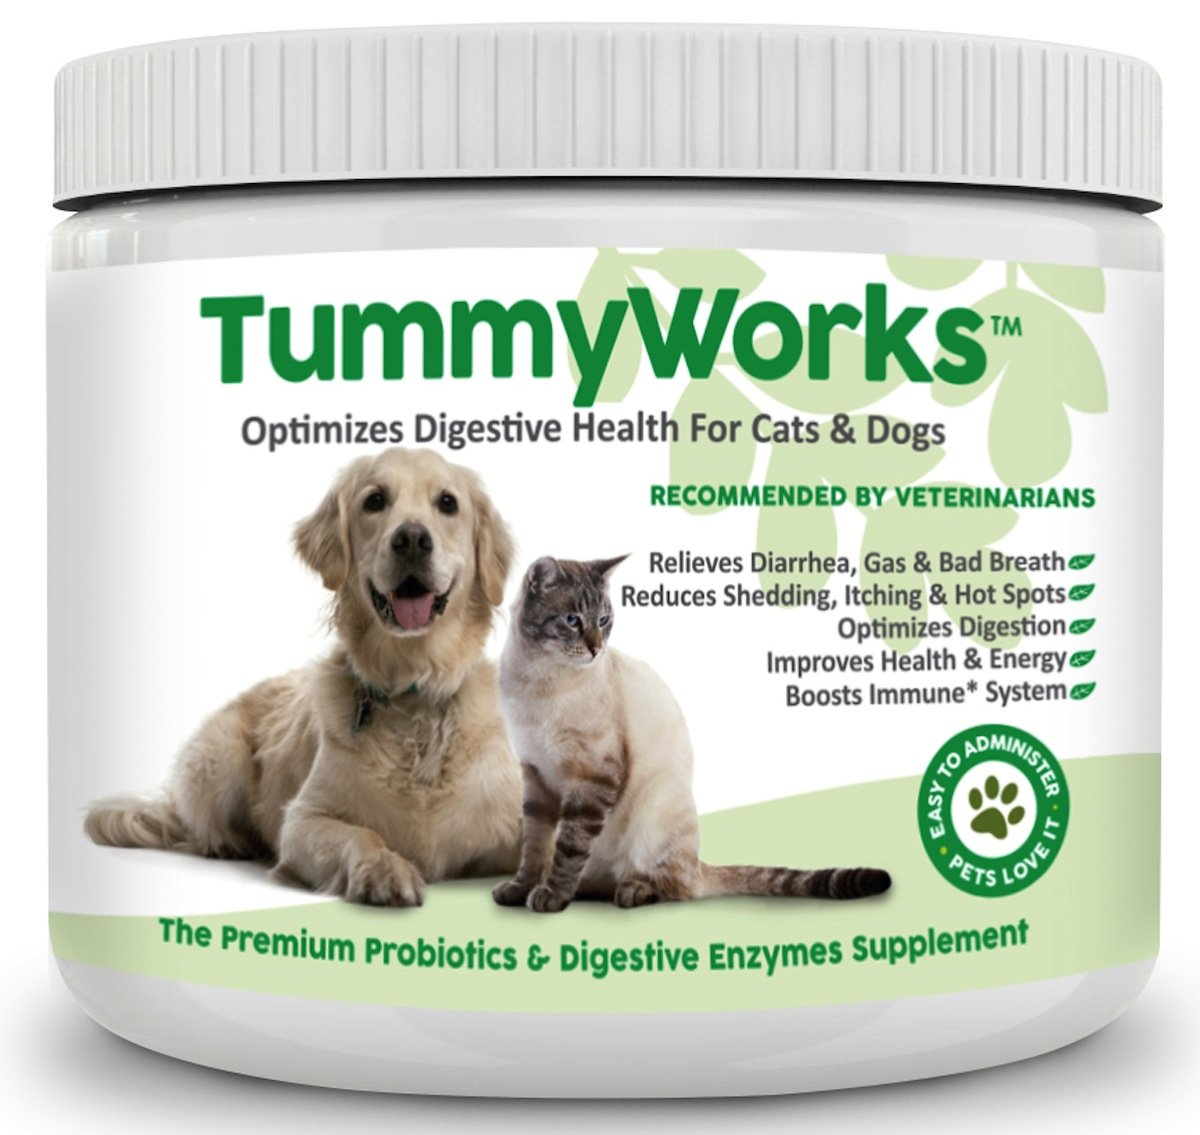 Probiotics For Dogs & Cats. Best Powder To Relieve Diarrhea, Yeast Infections, Itching, Skin Allergies & Bad Breath. Boosts Immunity. Added Digestive Enzymes Improve Digestion. Made In Usa 160 Scoops by Finest For Pets